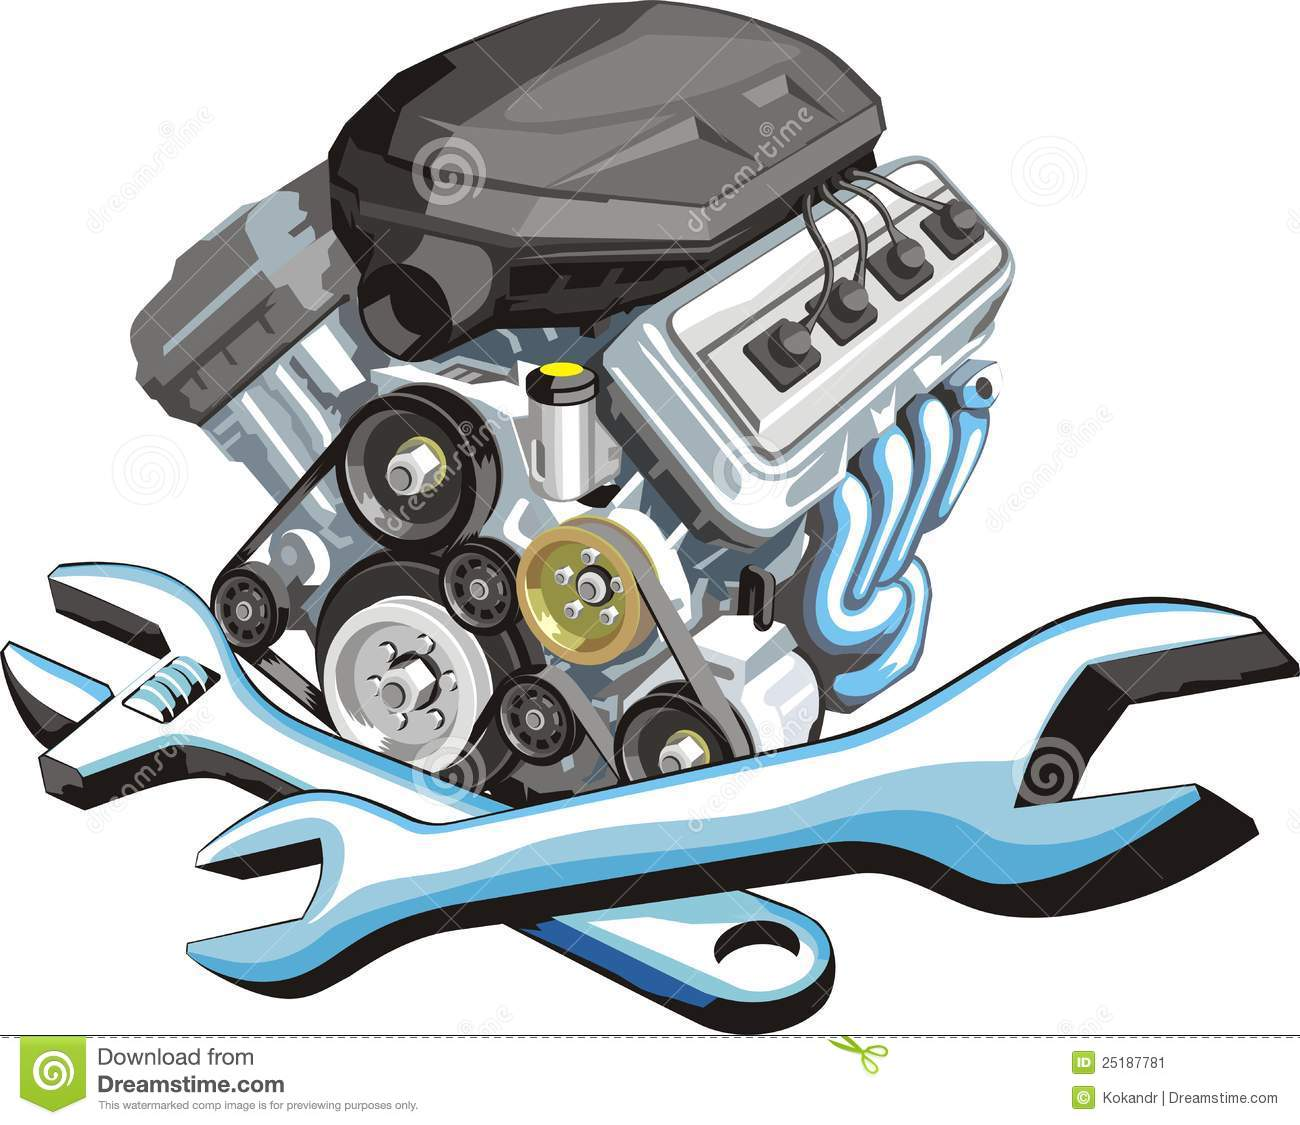 Auto Body Shop Clip Art Http Www Dreamstime Com Stock Image Car